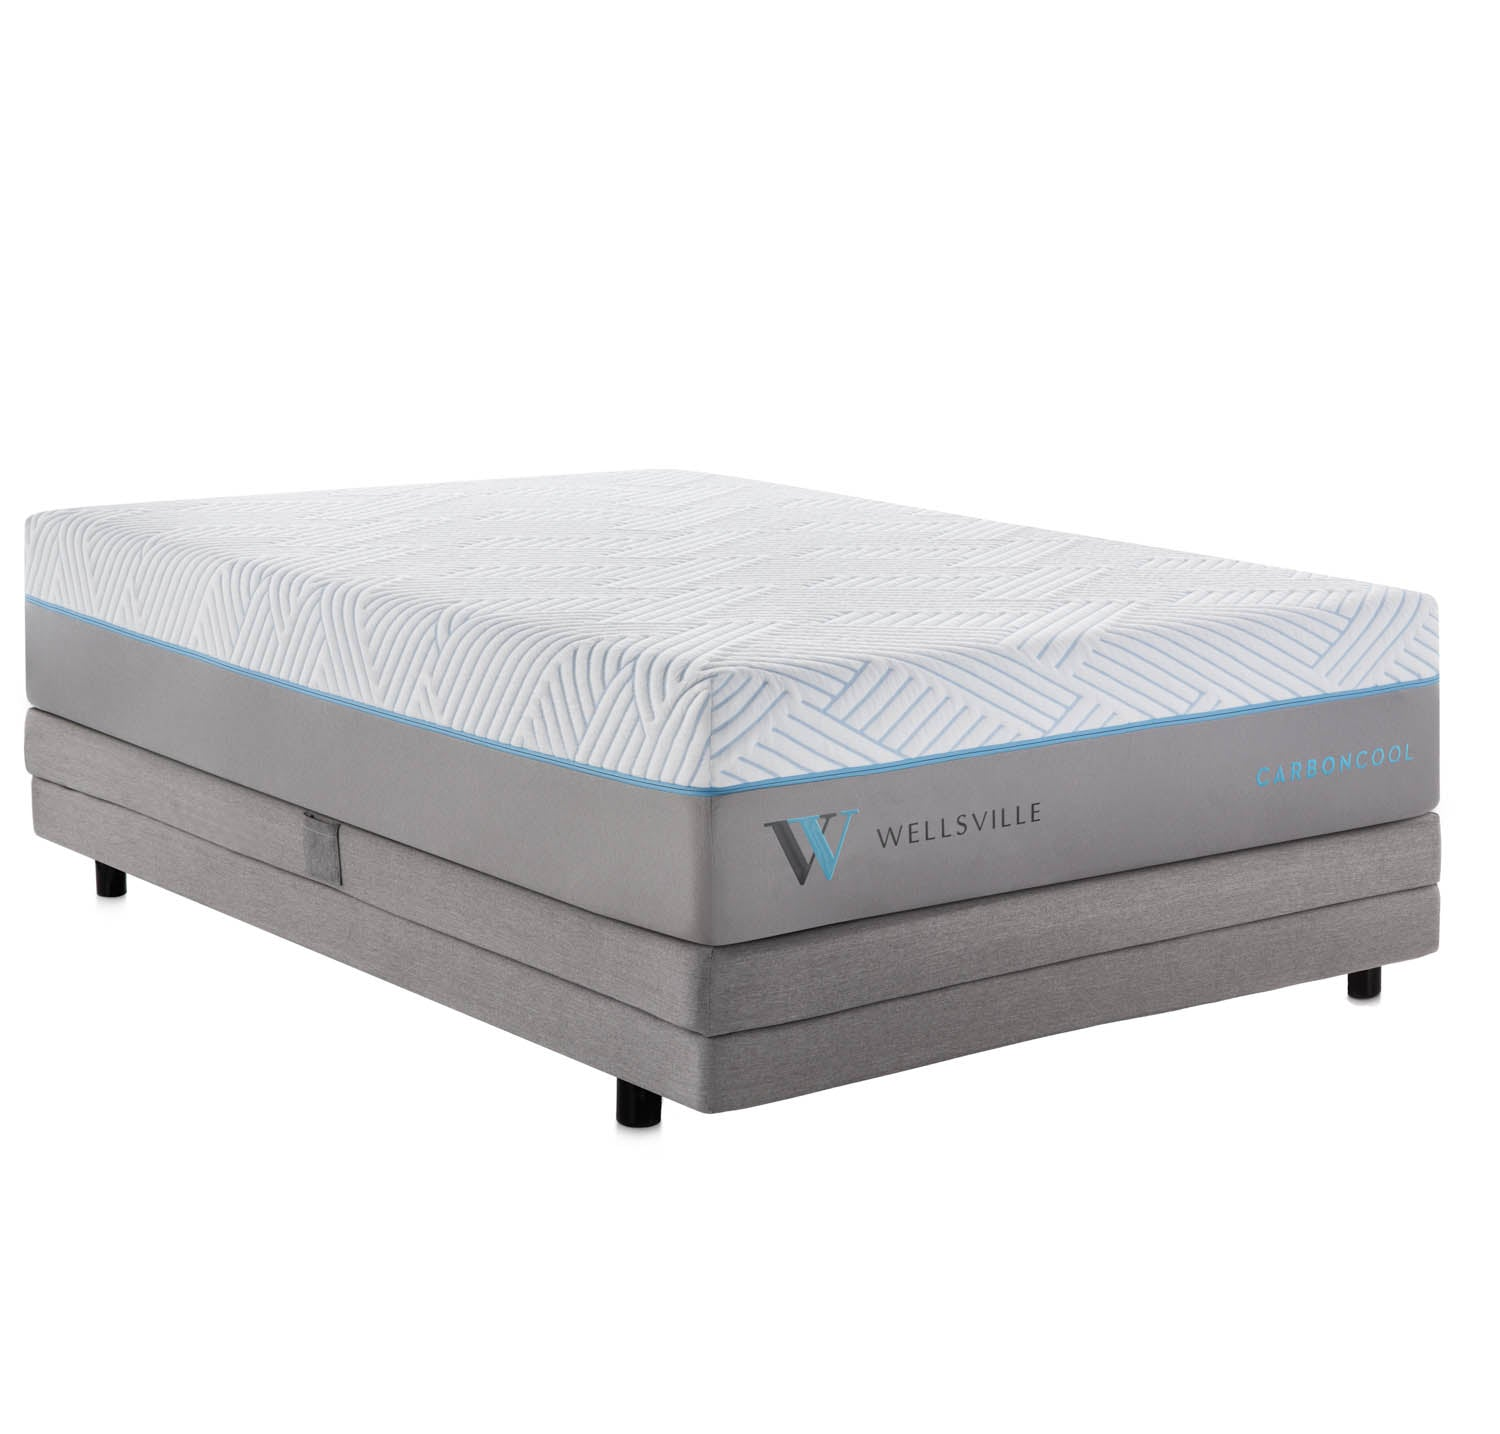 beds comfort adjustable king zenith cool sleep mattress textured motionflex cs next reverie with split bed base product previous